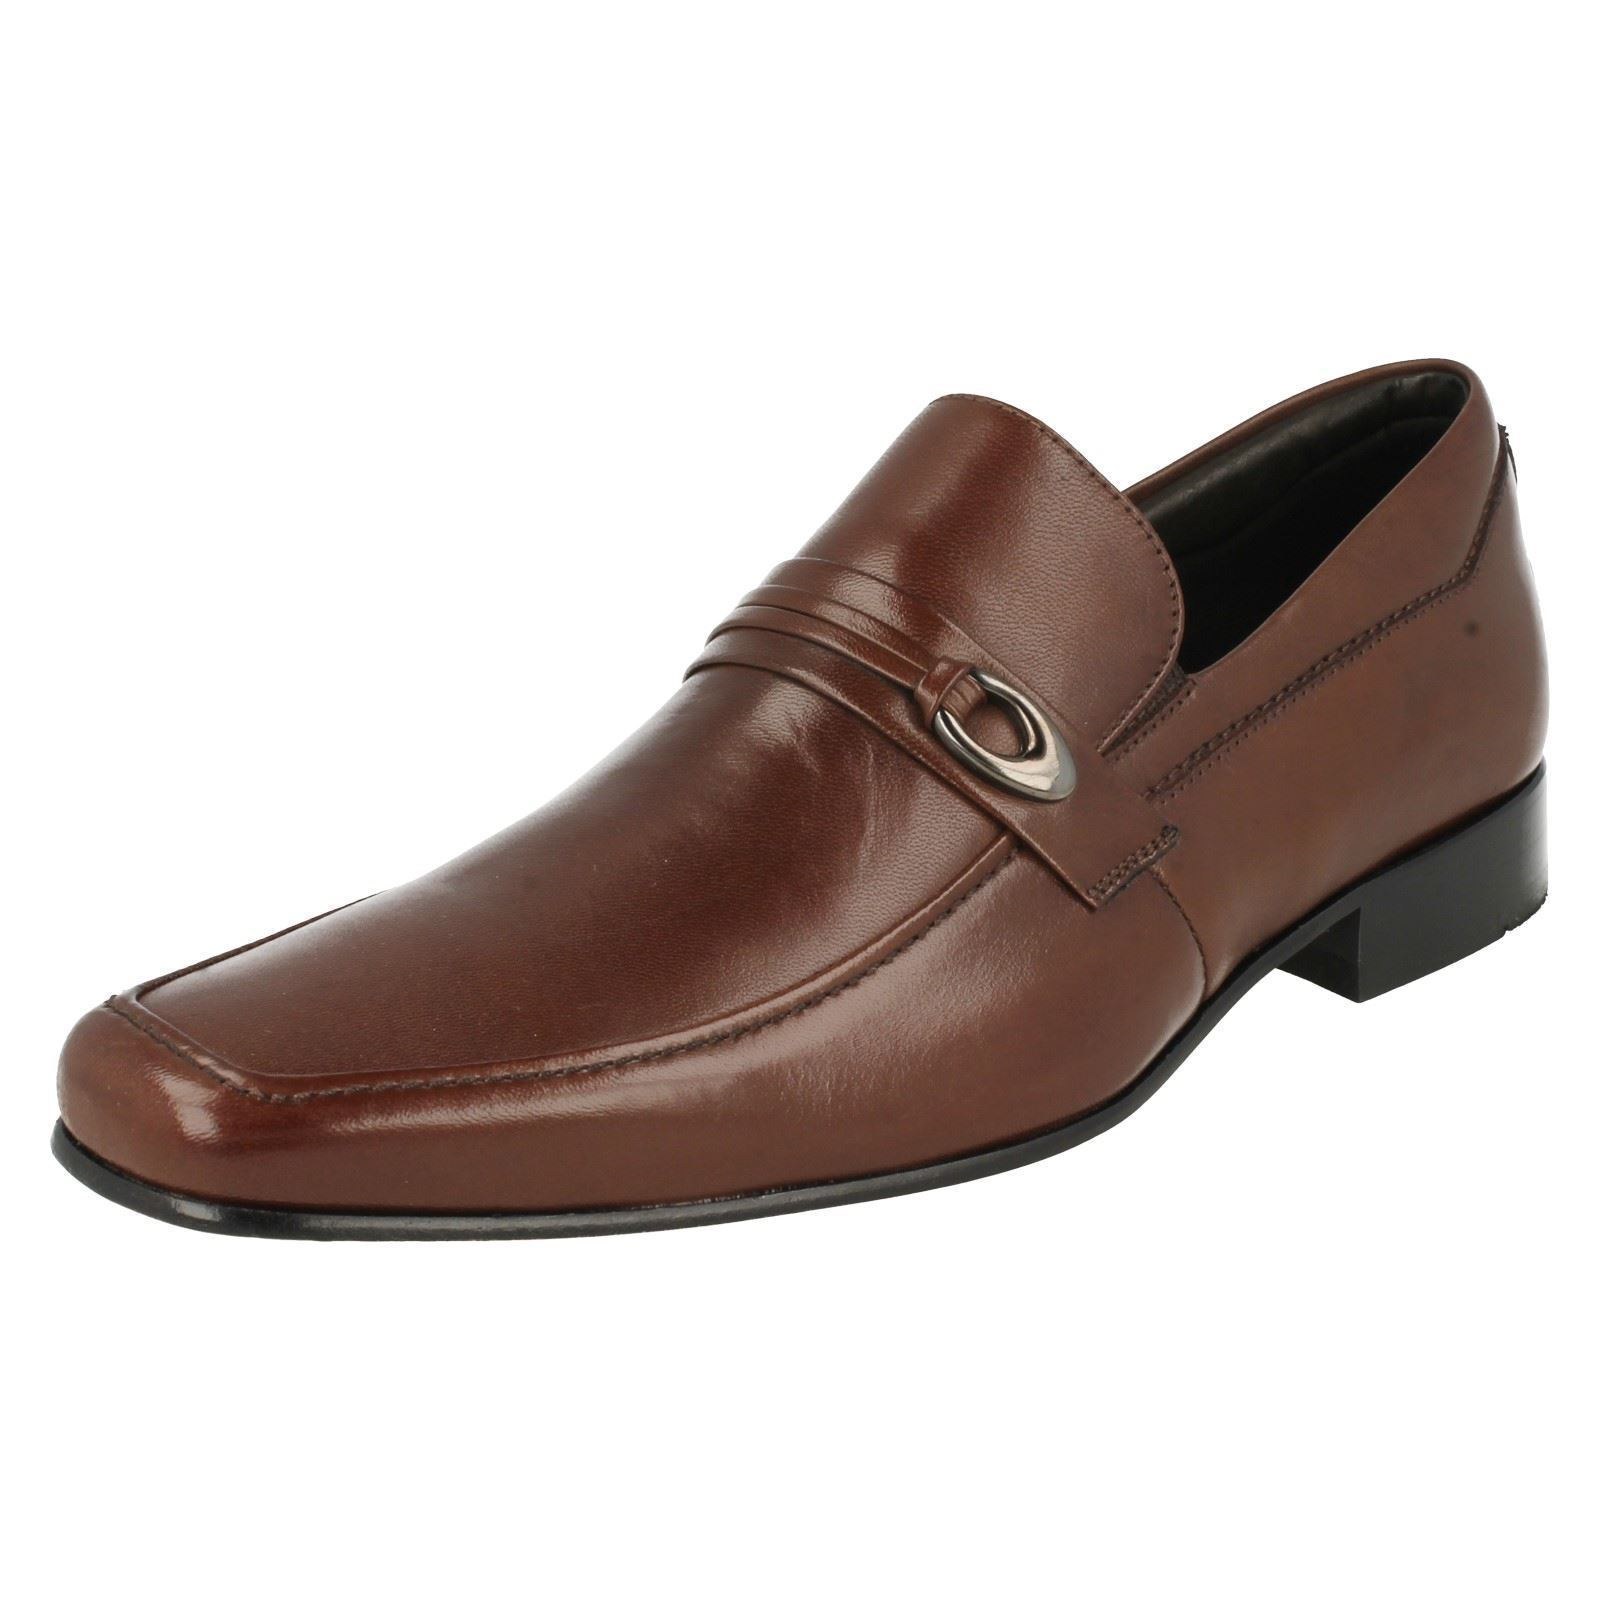 Da Uomo Anatomica PRIME goiania 2 Oro Brown Scarpe In Pelle Smart Mocassini Scarpe Brown 5182a3